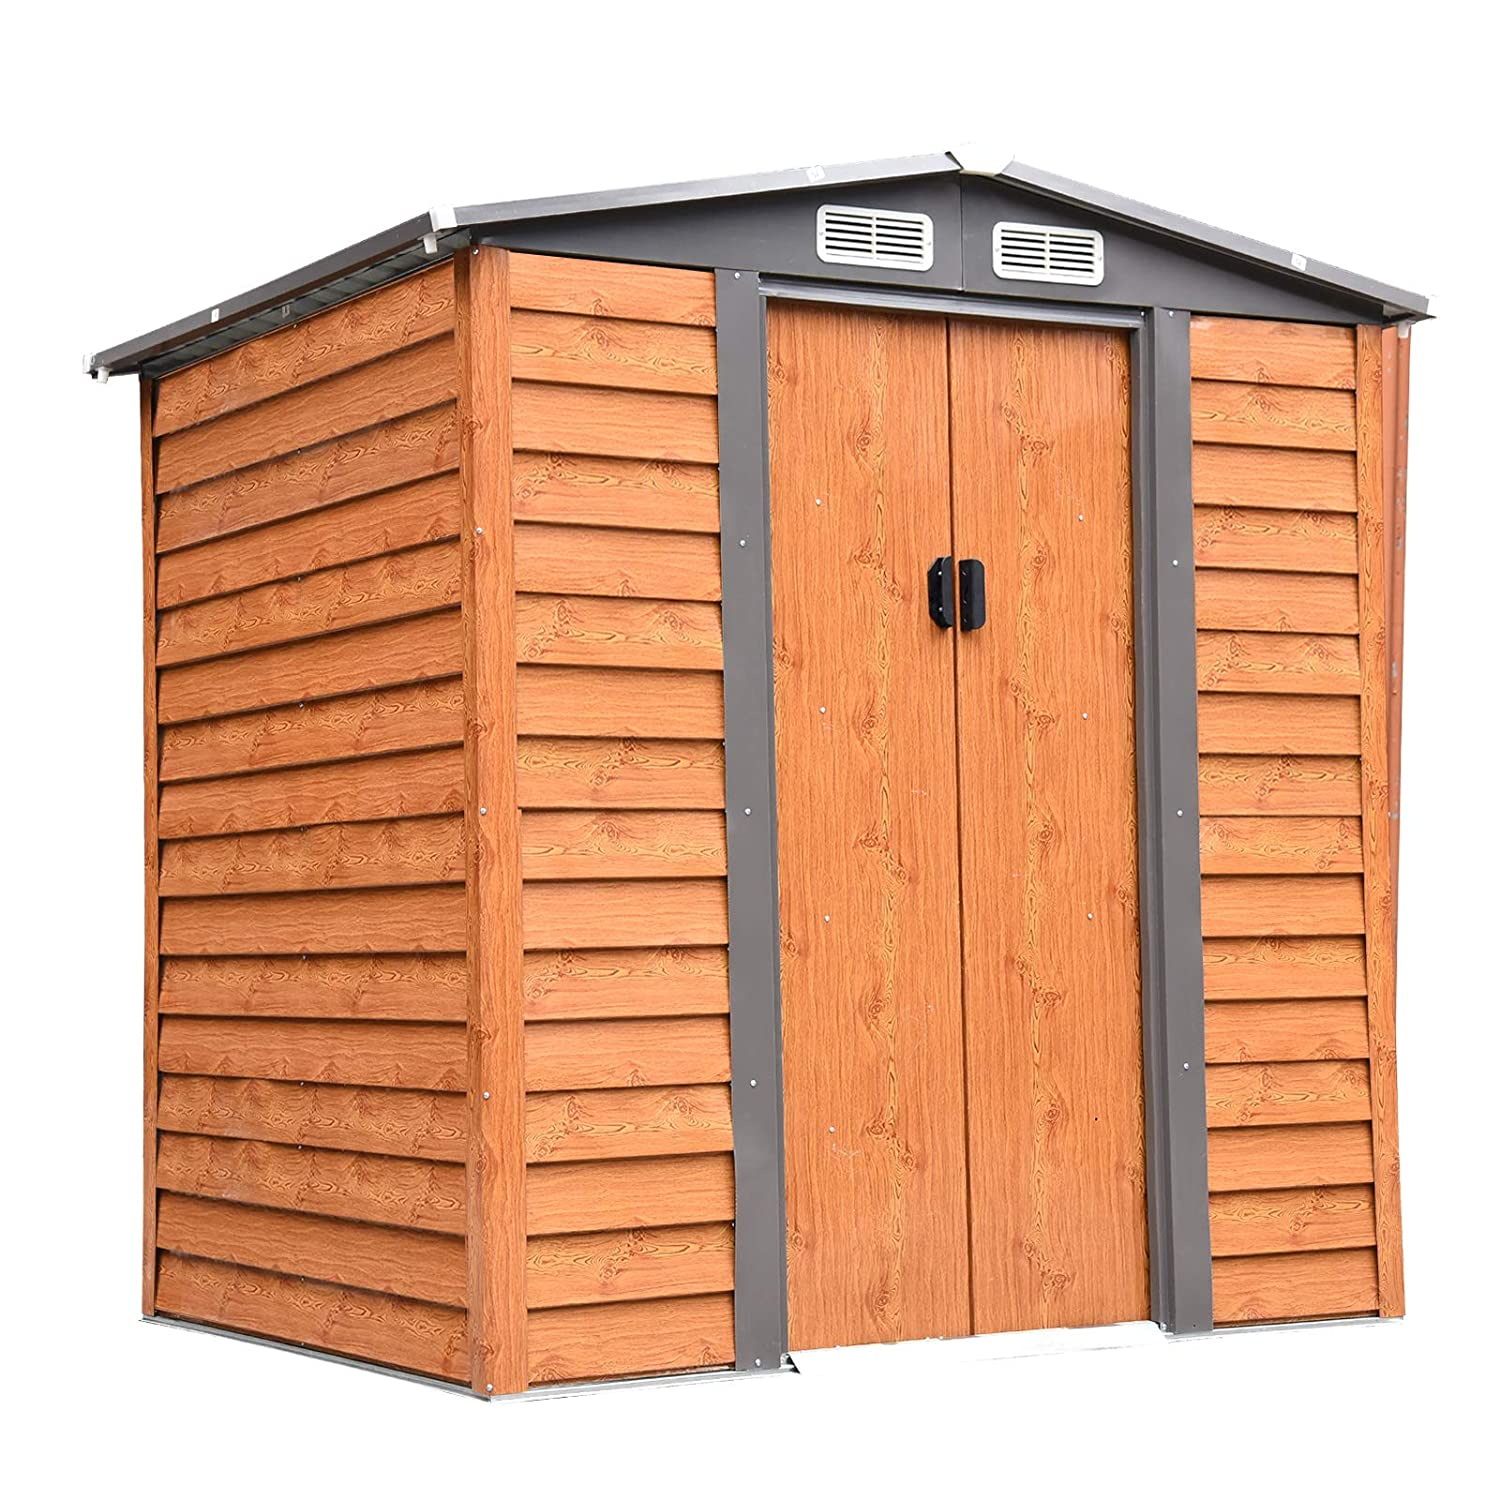 193L x 152W x 176.5-203H cm Outsunny 5 x 7 ft Metal Garden Shed House Hut Gardening Tool Storage with Foundation and Ventilation Brown with wood grain 193L x 152W x 203H cm